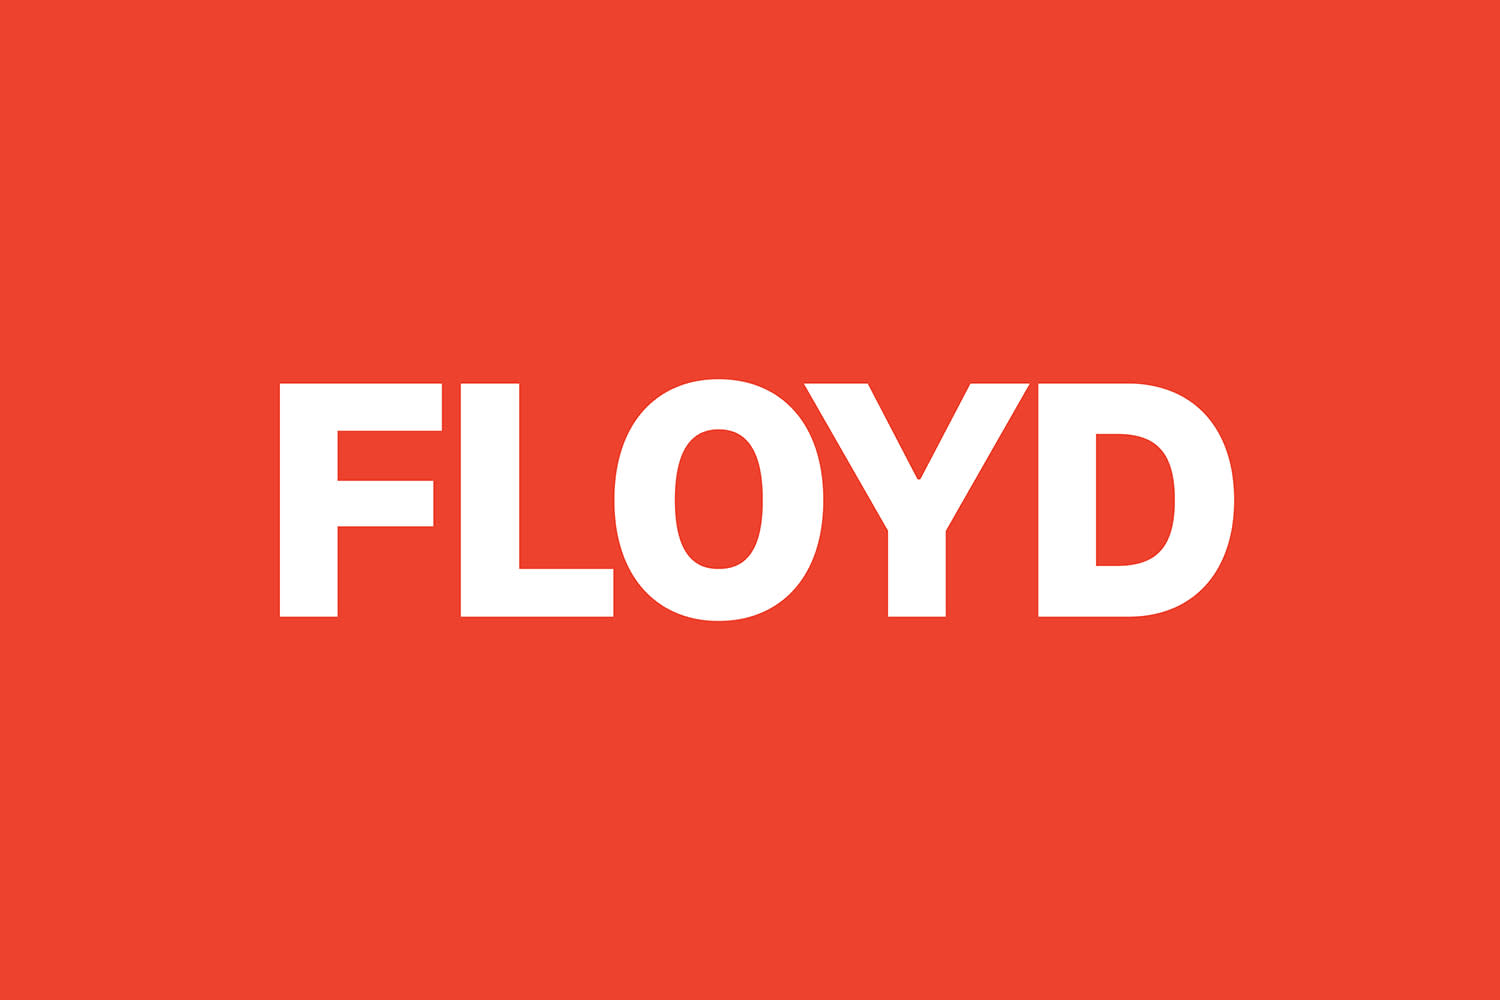 Floyd Visual Identity